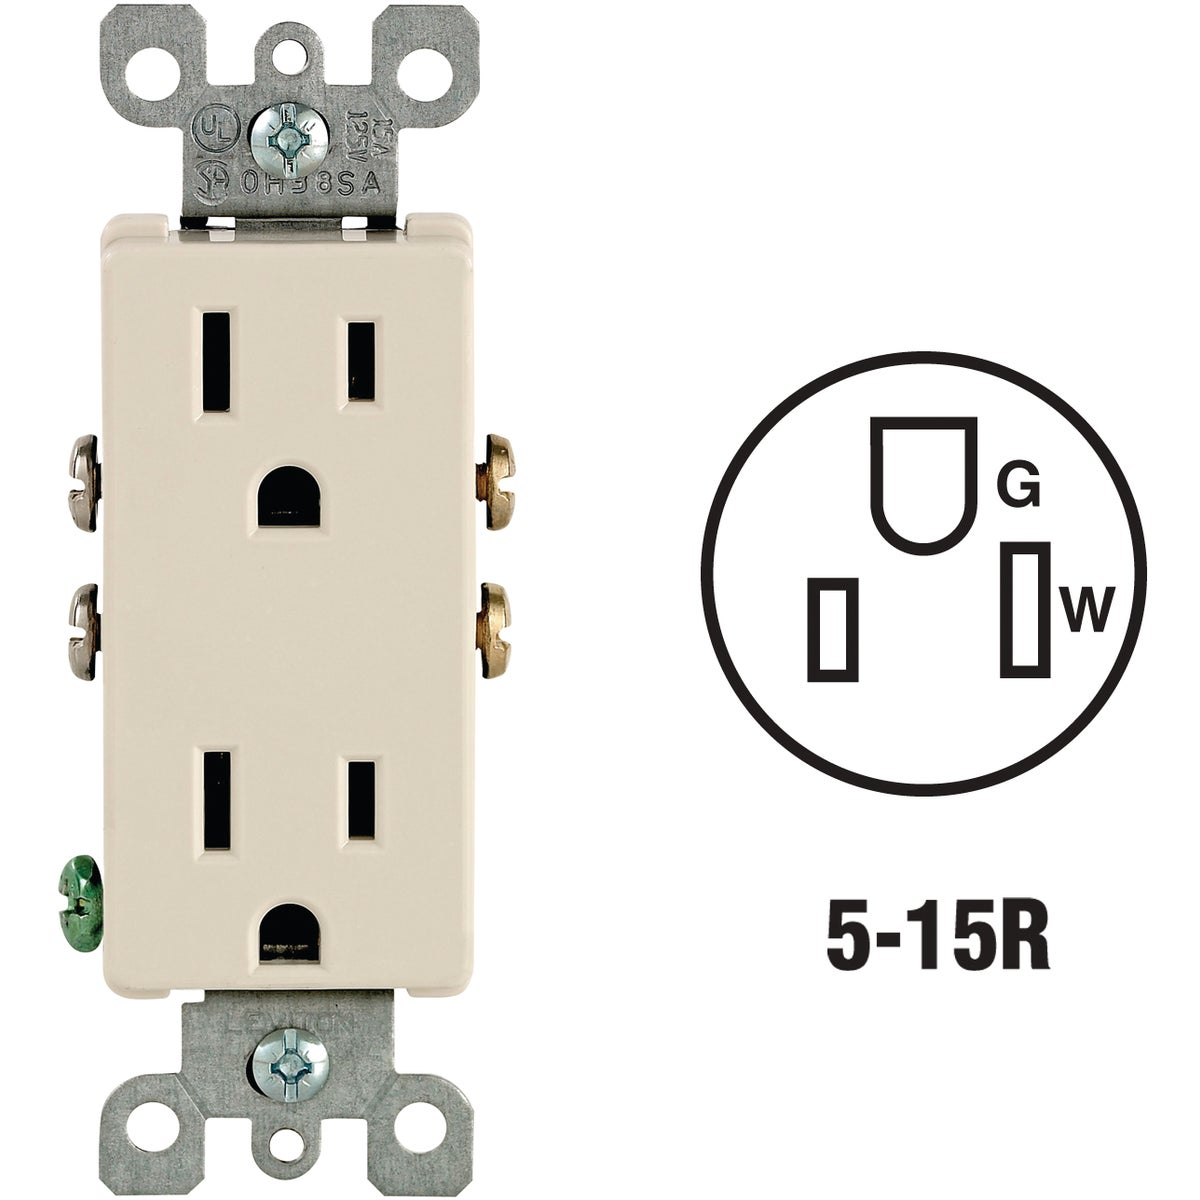 LT ALM GRND OUTLET - S06-05325-OTS by Leviton Mfg Co